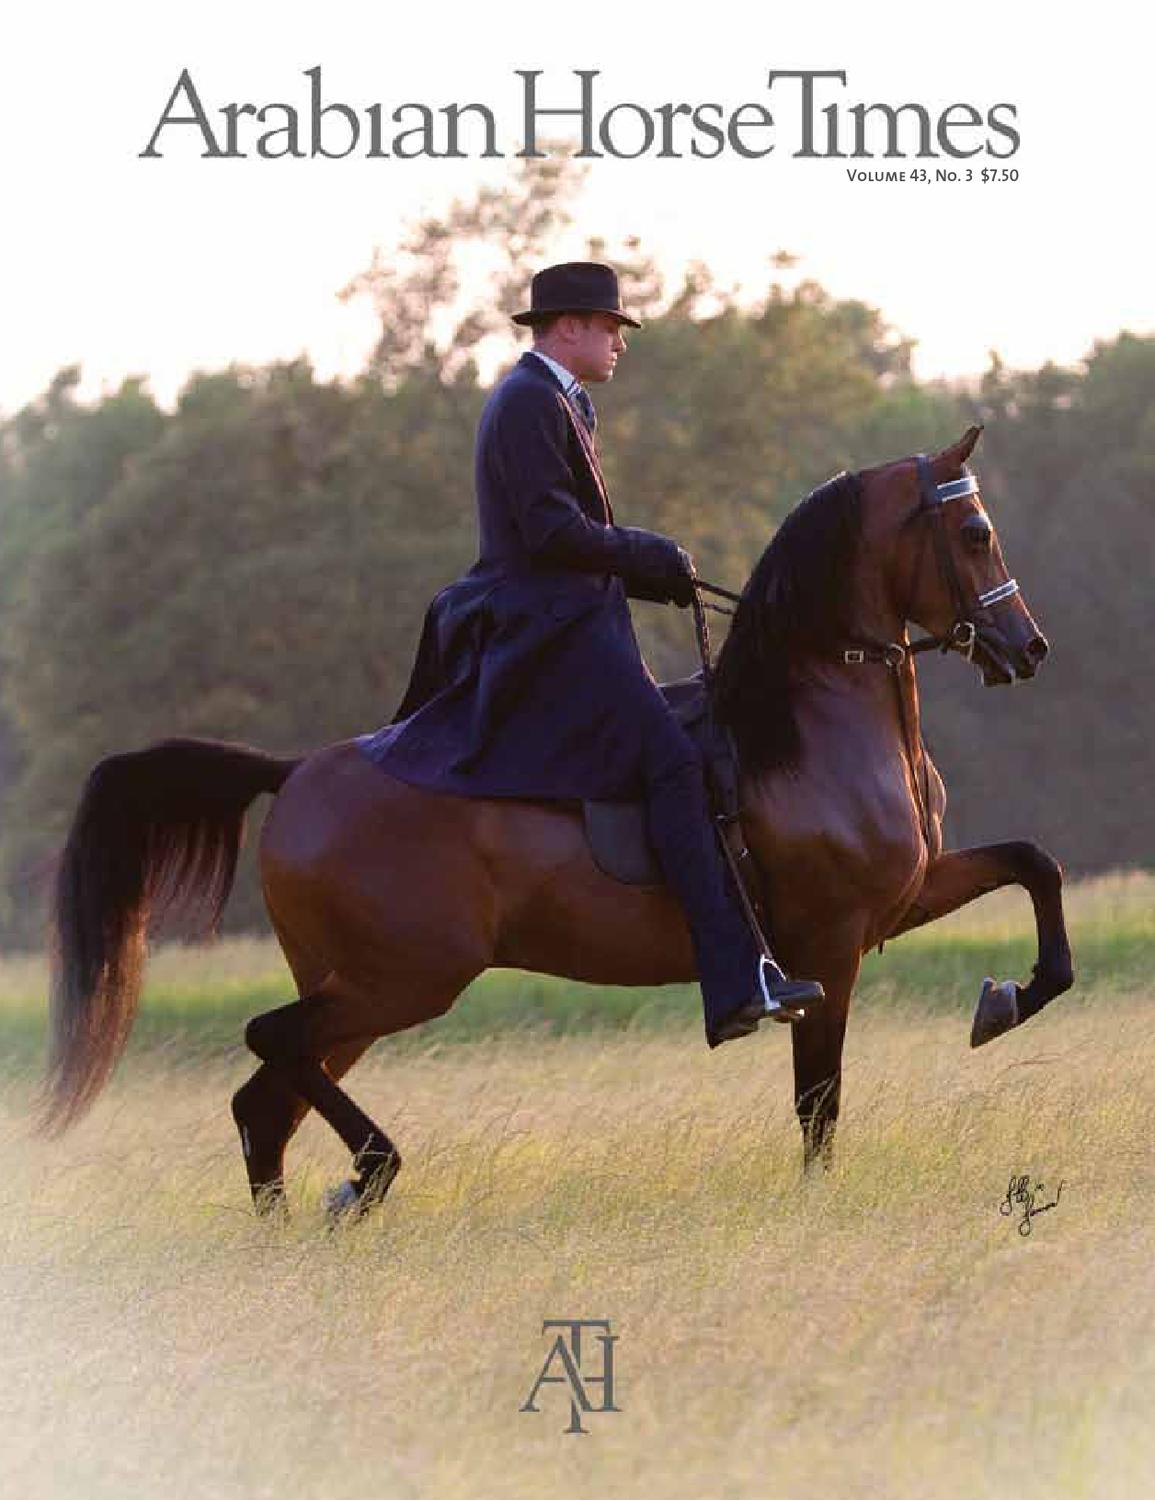 Arabian Horse Times Vol 43 No 3 By Arabian Horse Times Issuu